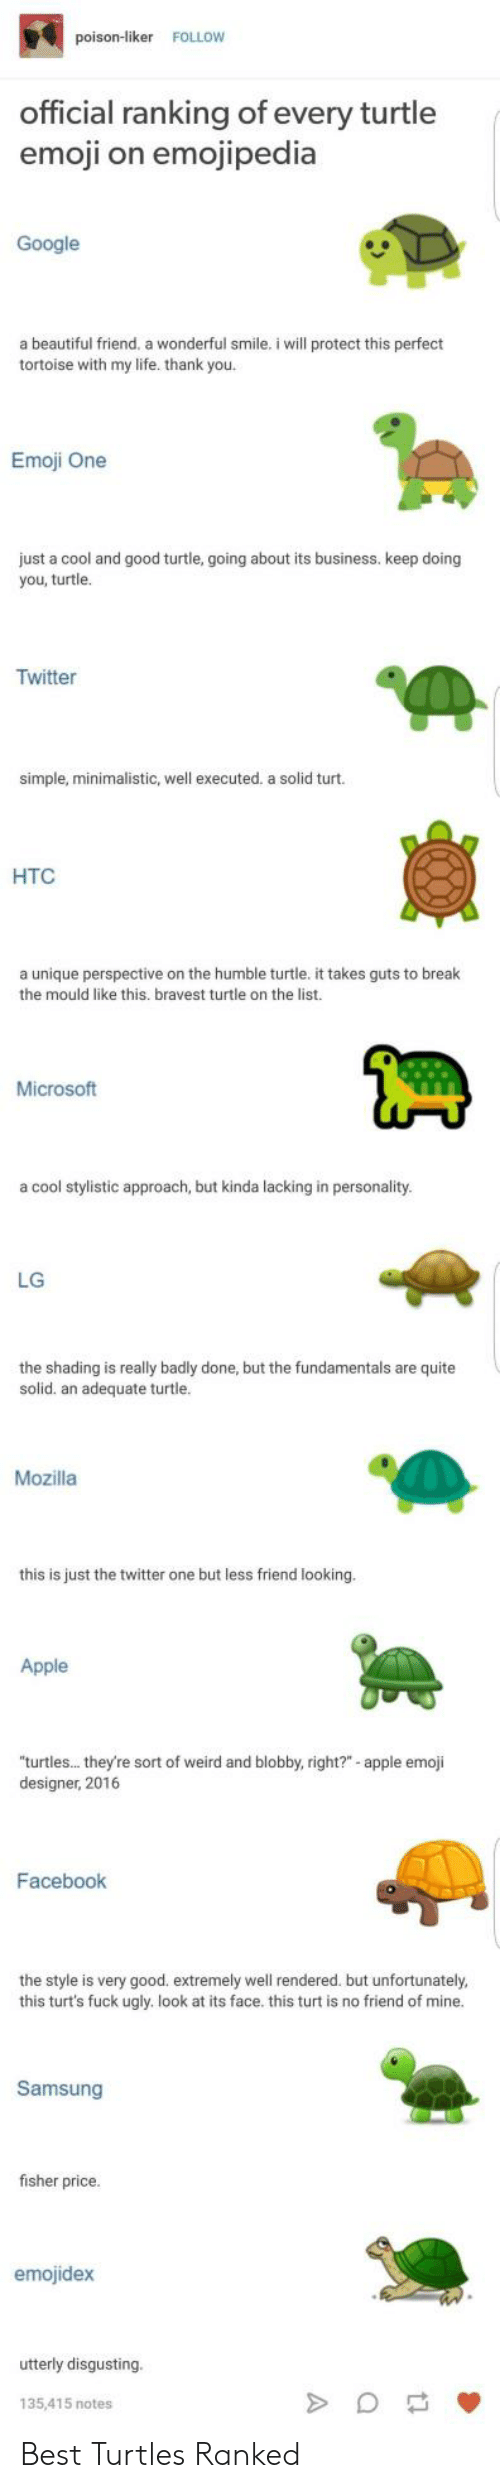 "Turt: poison-liker FOLLOW  official ranking of every turtle  emoji on emojipedia  Google  a beautiful friend, a wonderful smile. i will protect this perfect  tortoise with my life. thank you.  Emoji One  just a cool and good turtle, going about its business. keep doing  you, turtle.  Twitter  simple, minimalistic, well executed. a solid turt.  HTC  a unique perspective on the humble turtle. it takes guts to break  the mould like this. bravest turtle on the list.  Microsoft  a cool stylistic approach, but kinda lacking in personality  LG  the shading is really badly done, but the fundamentals are quite  solid. an adequate turtle.  Mozilla  this is just the twitter one but less friend looking.  Apple  turtles... they're sort of weird and blobby, right?""- apple emoji  designer, 2016  Facebook  the style is very good. extremely well rendered. but unfortunately  this turt's fuck ugly. look at its face. this turt is no friend of mine  Samsung  fisher price  emojidex  utterly disgusting  135,415 notes Best Turtles Ranked"